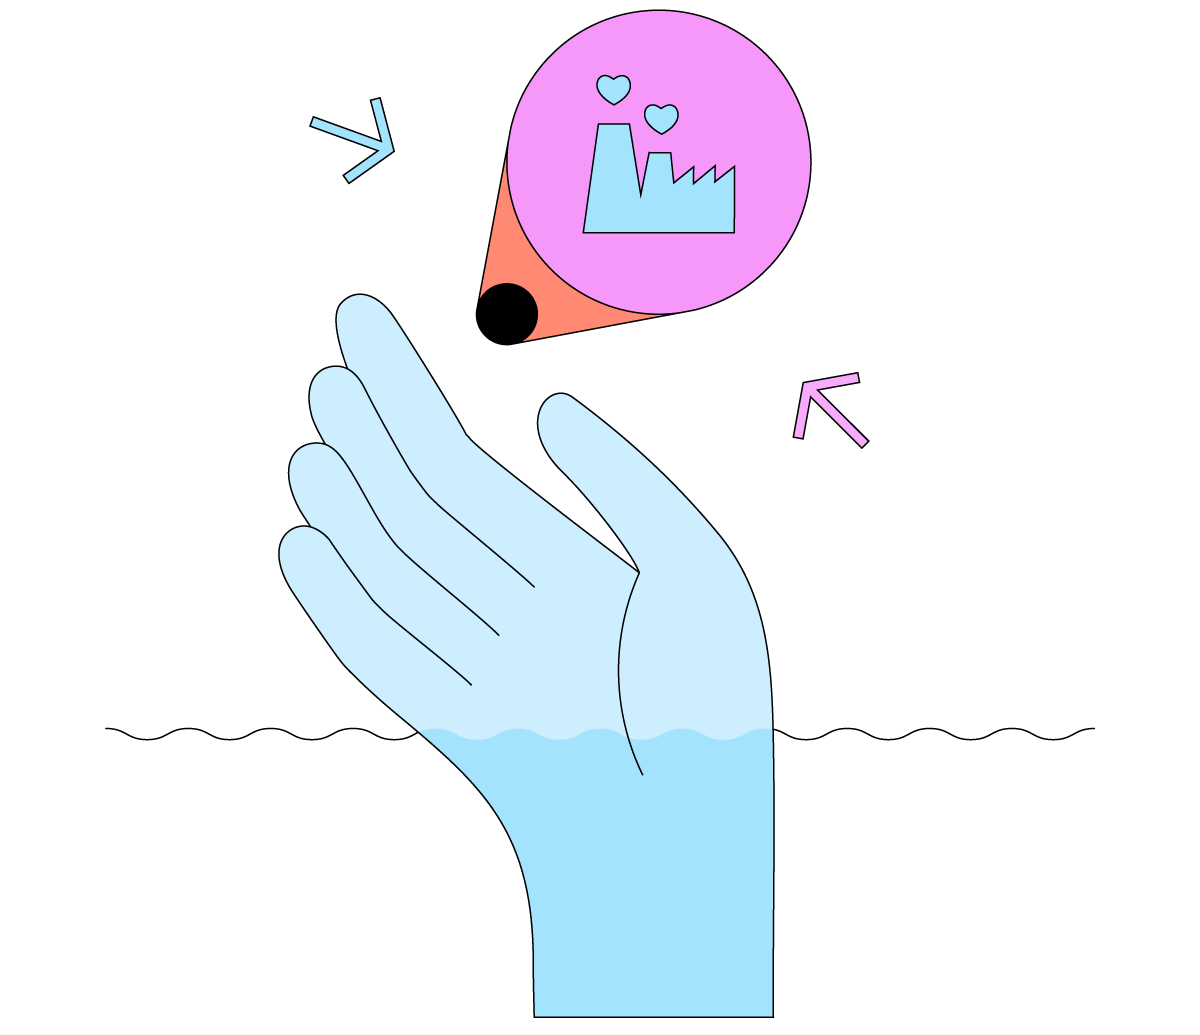 Cartoon graphic of the ocean and a hand holding up a sign of a factory. Instead of smoke, the factory emits hearts, linking the image to the mega-trend Better Business